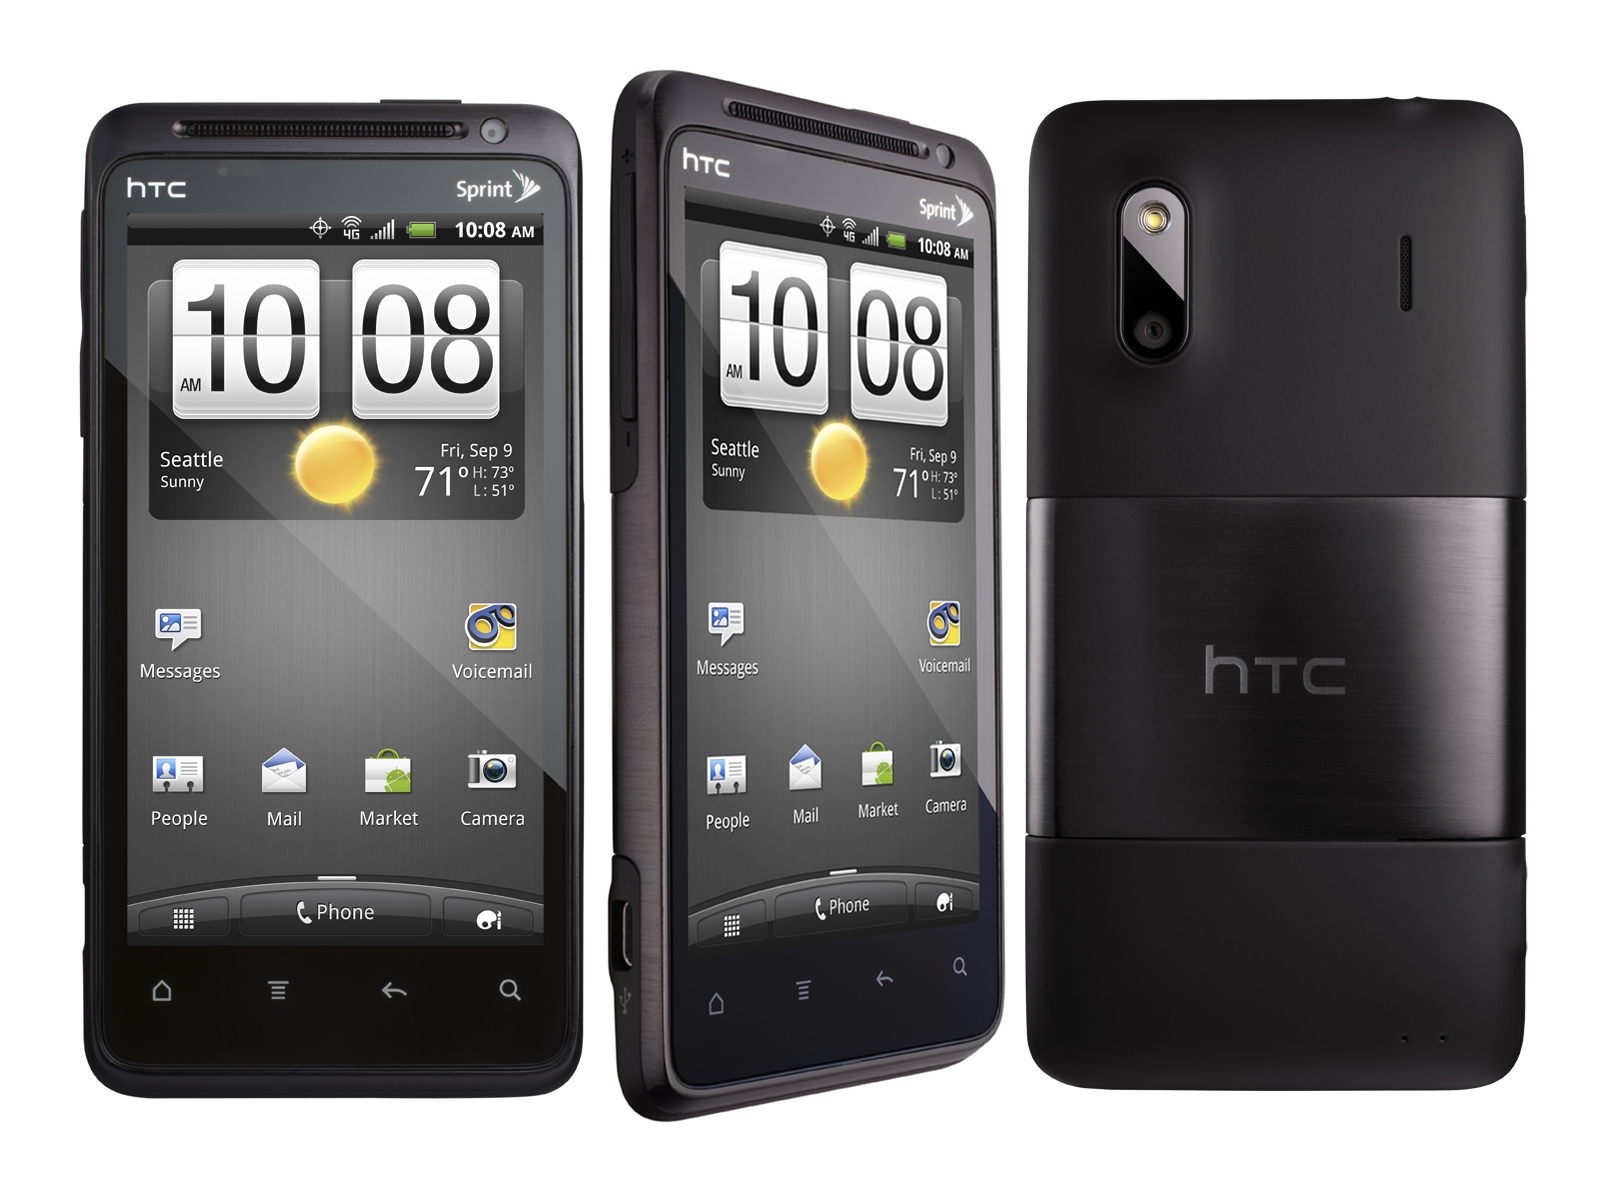 htc evo design 4g wimax android smart phone boost mobile excellent condition used cell. Black Bedroom Furniture Sets. Home Design Ideas